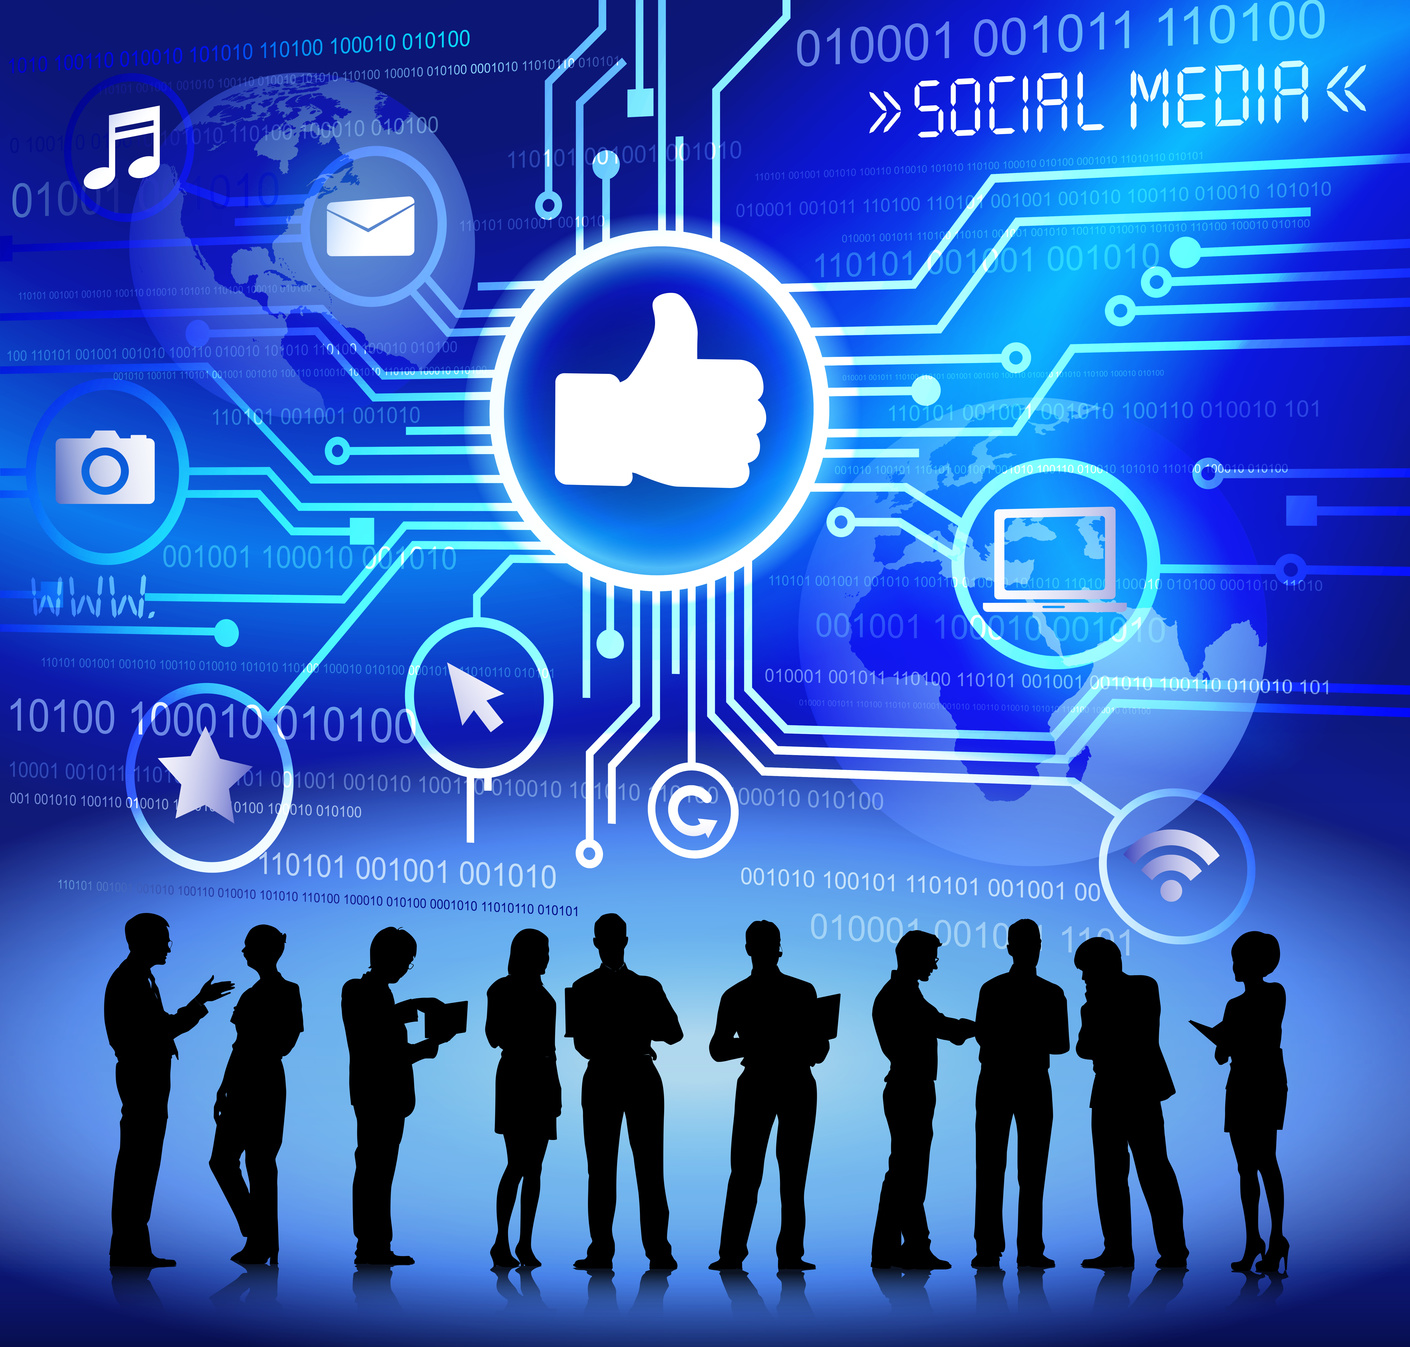 Silhouettes Business People Social Media Concept